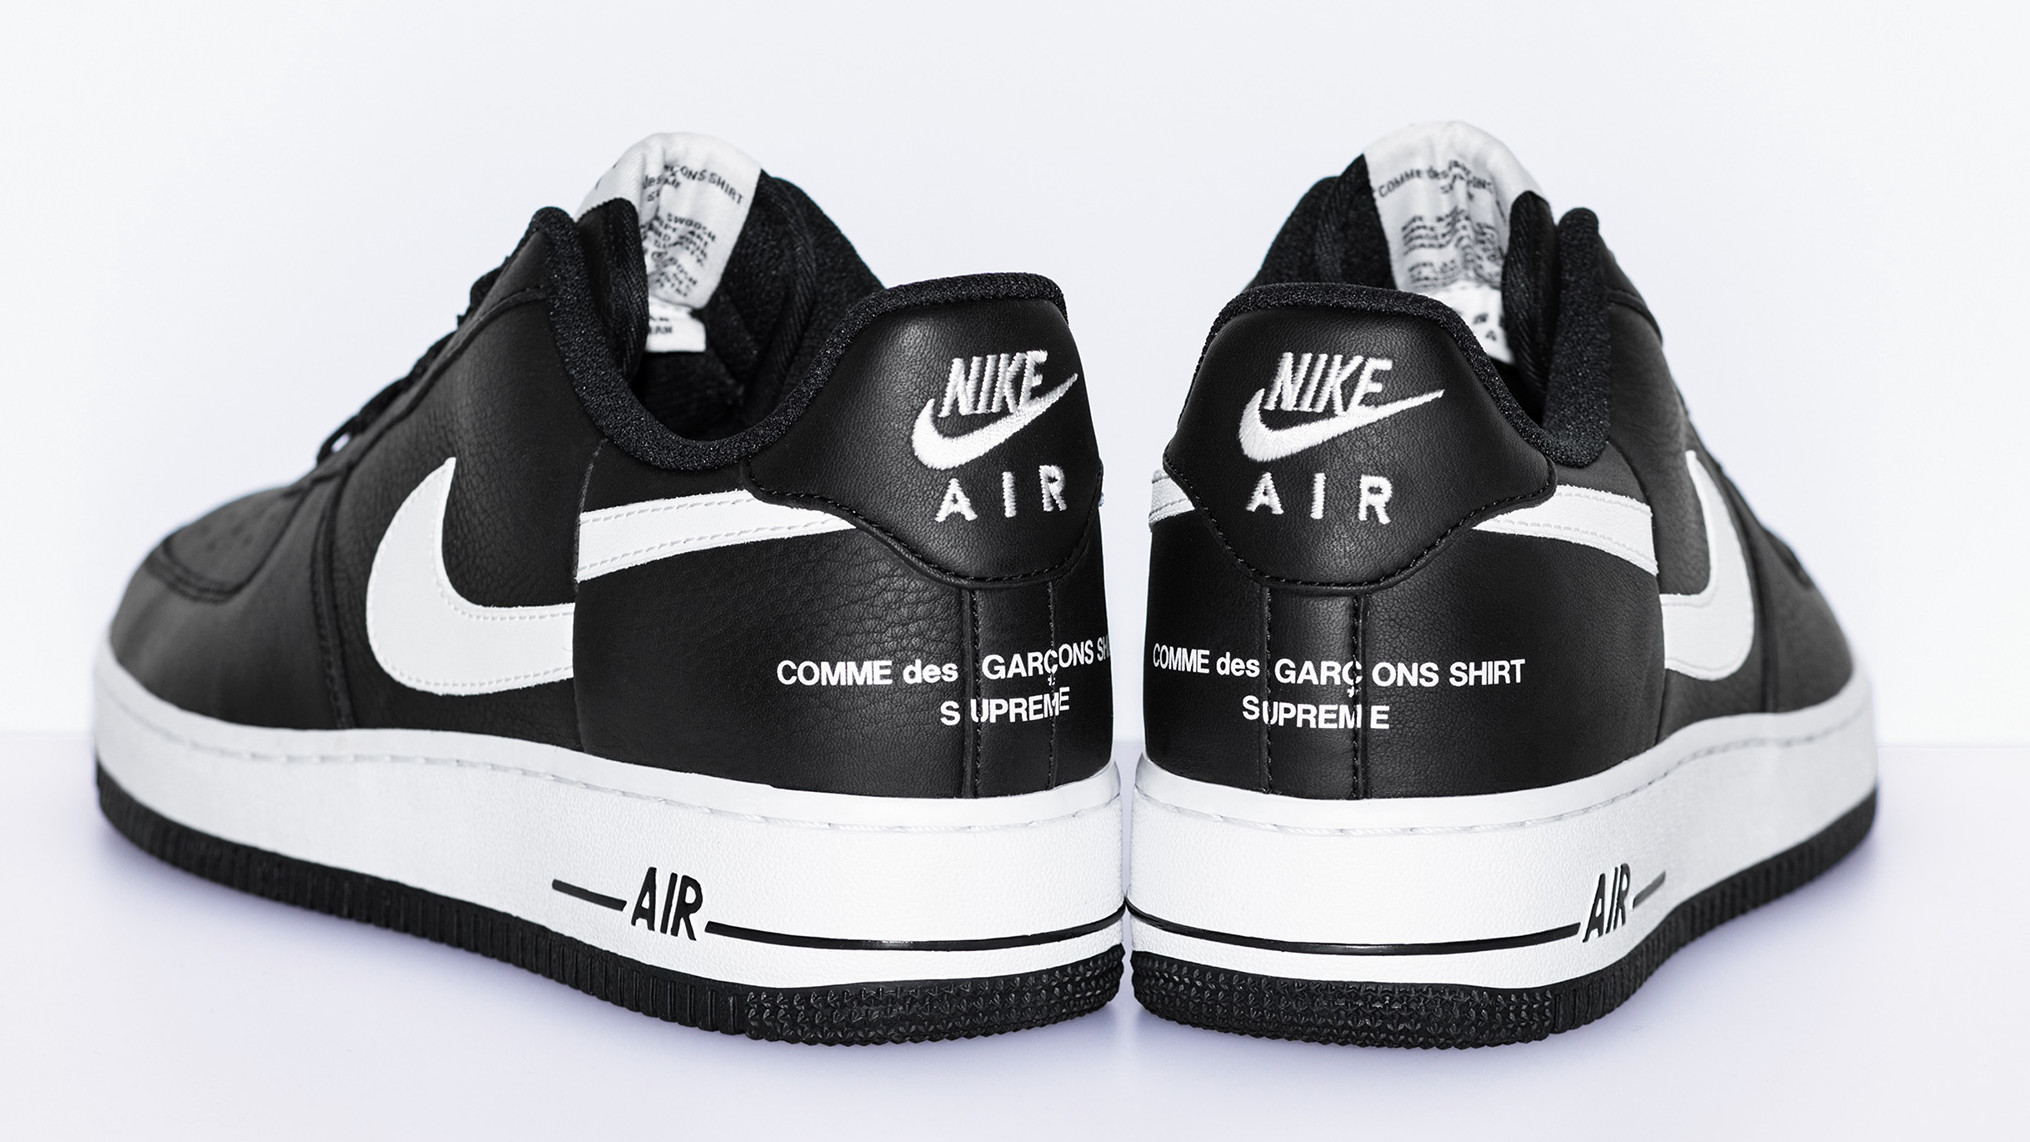 sale retailer dbe87 c6861 Supreme x Comme Des Garcons x Nike Air Force 1 Fall/Winter 2018 | Sole  Collector